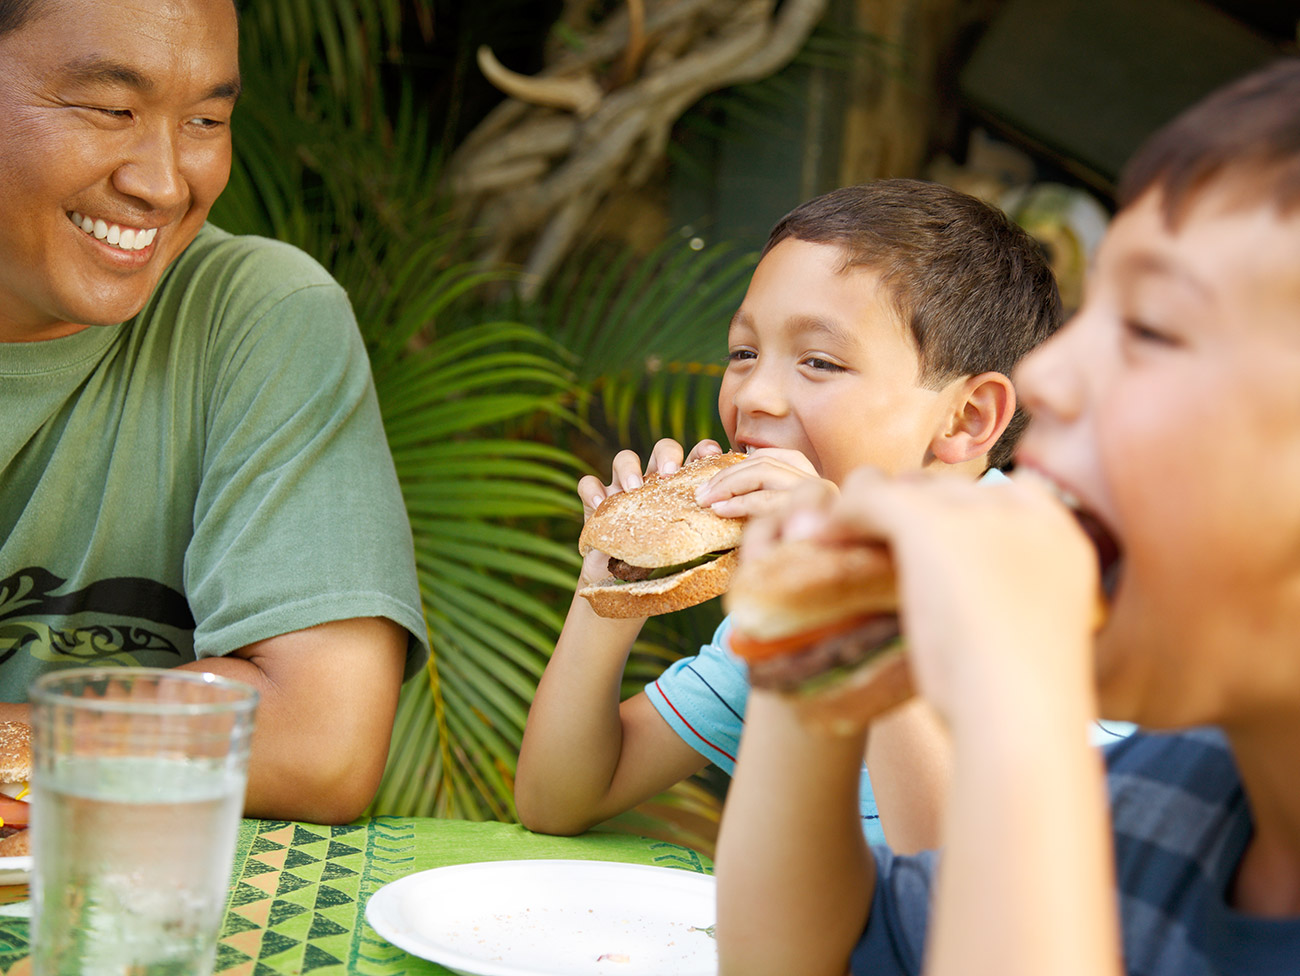 man seated at table smiling and looking toward 2 young boys who are eating sandwiches